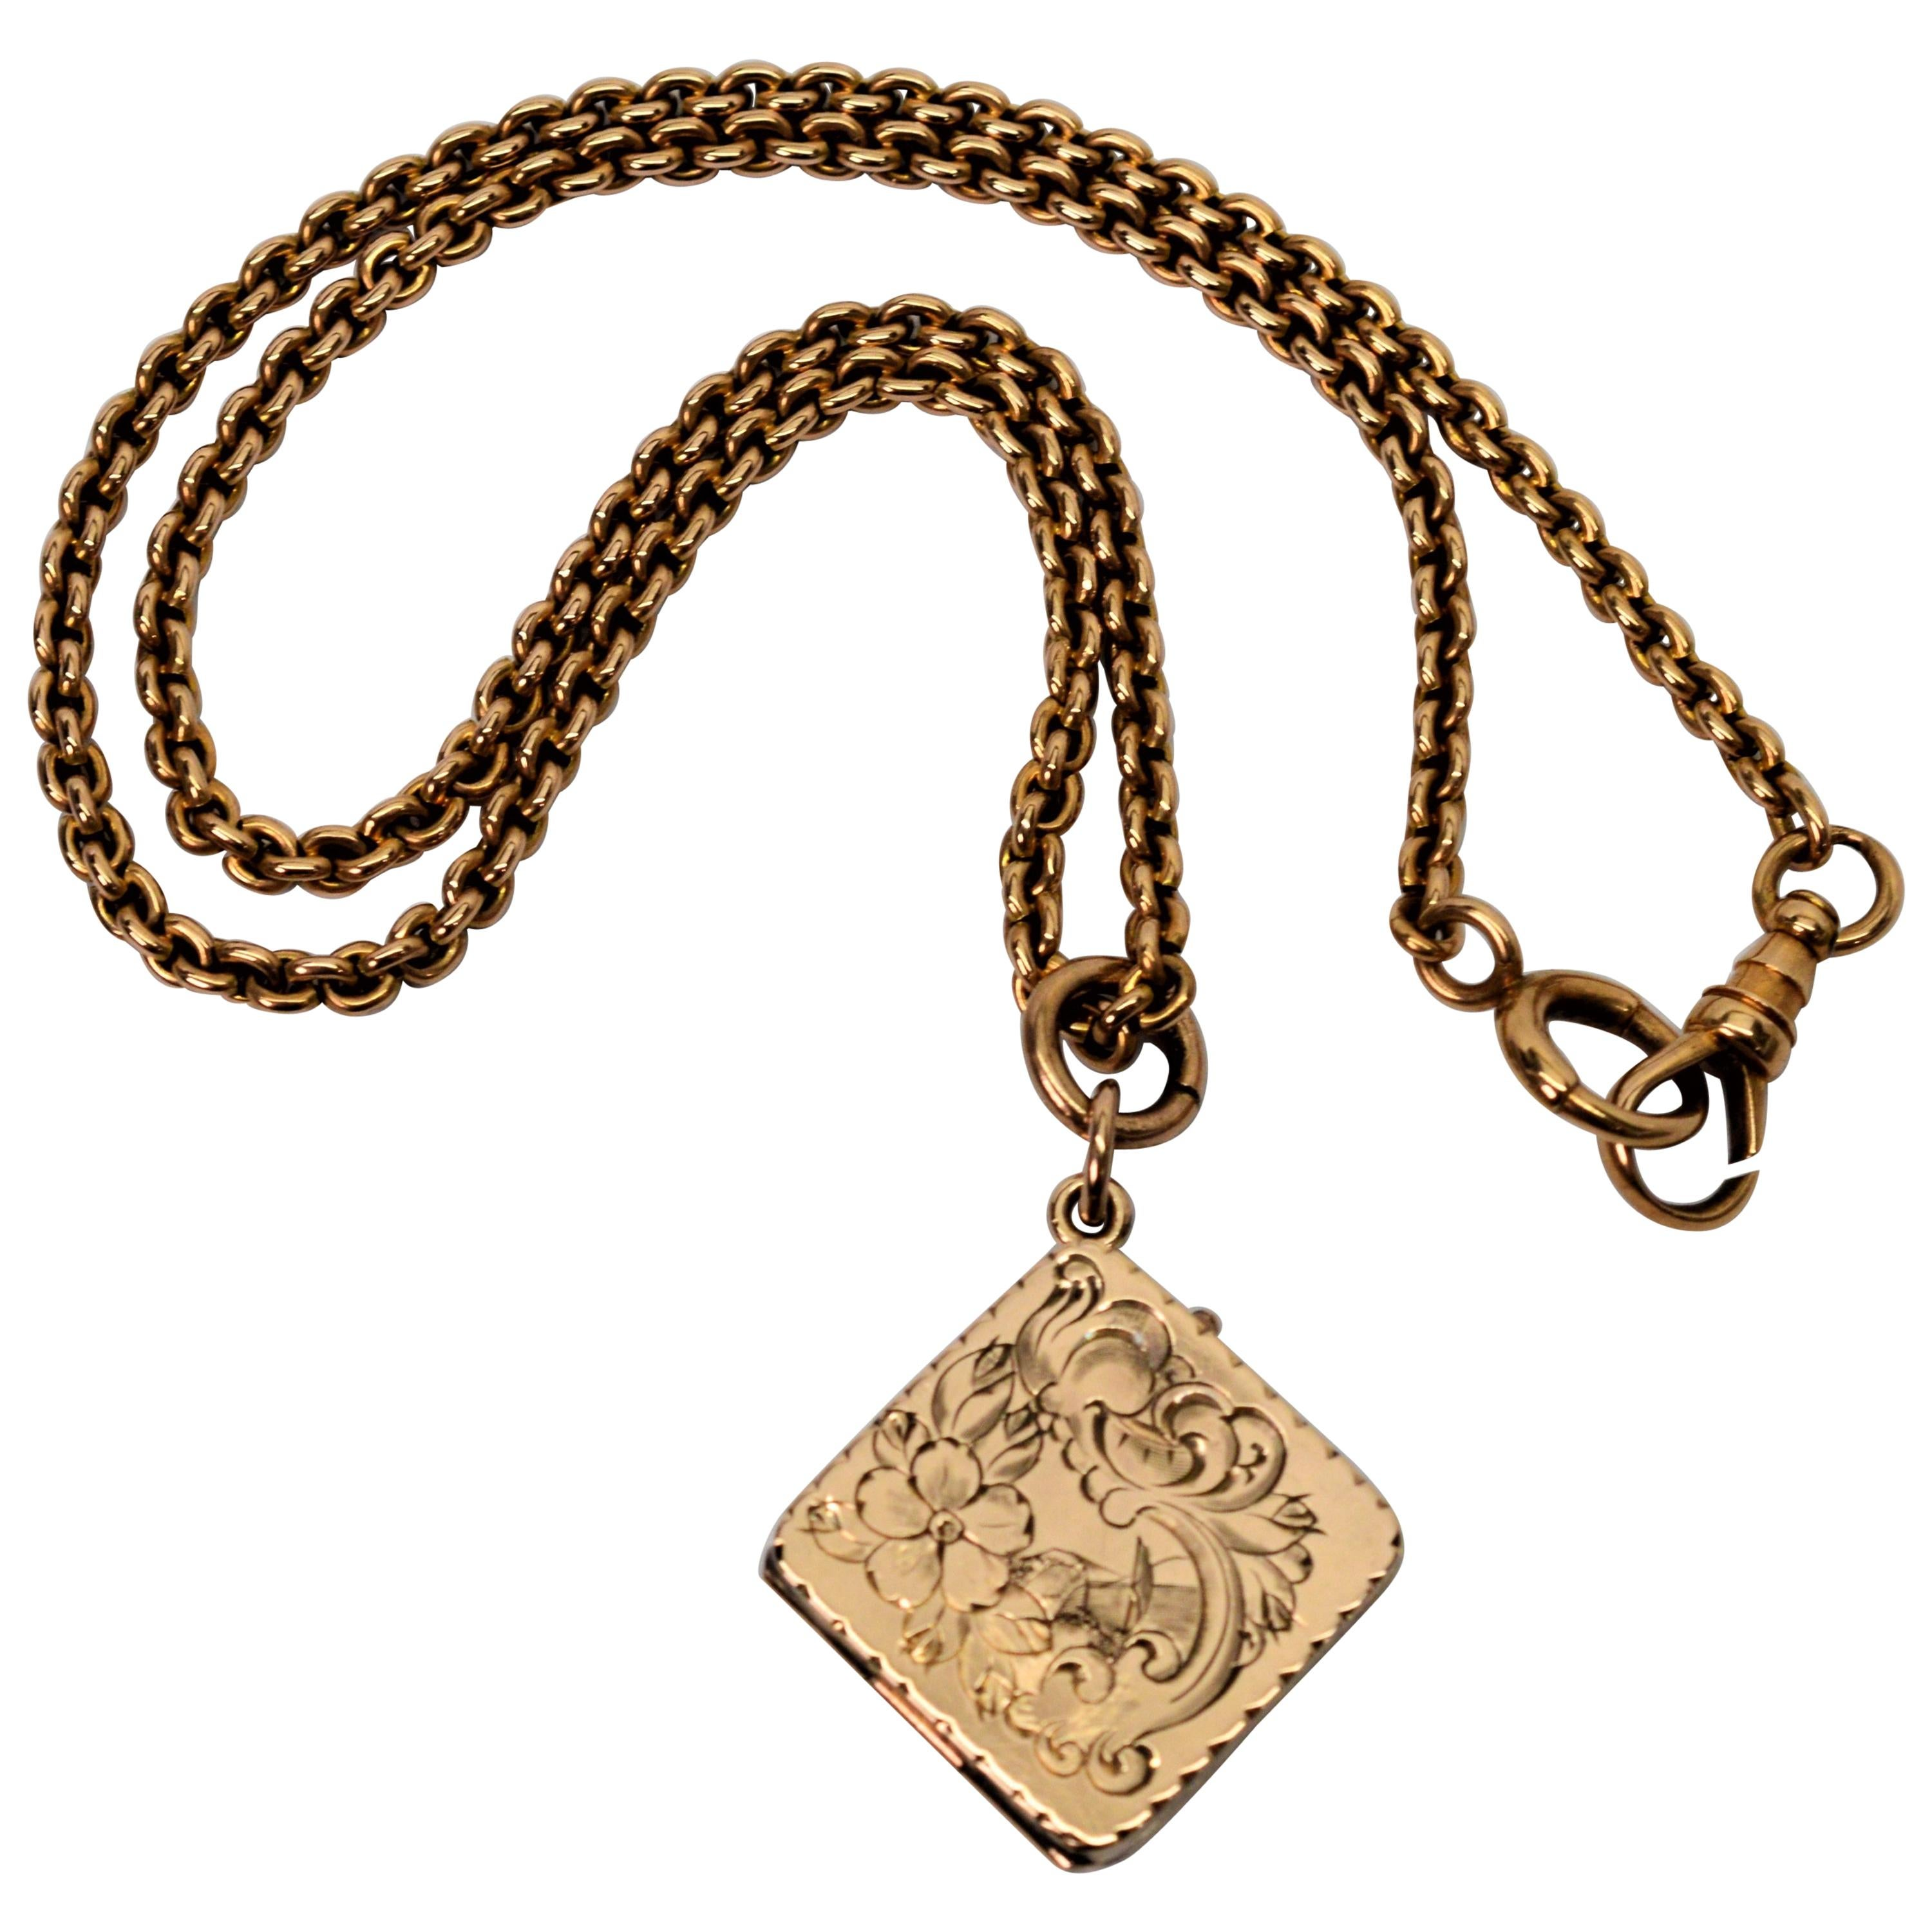 Yellow Gold Antique Watch Chain Necklace with Locket Charm Fob